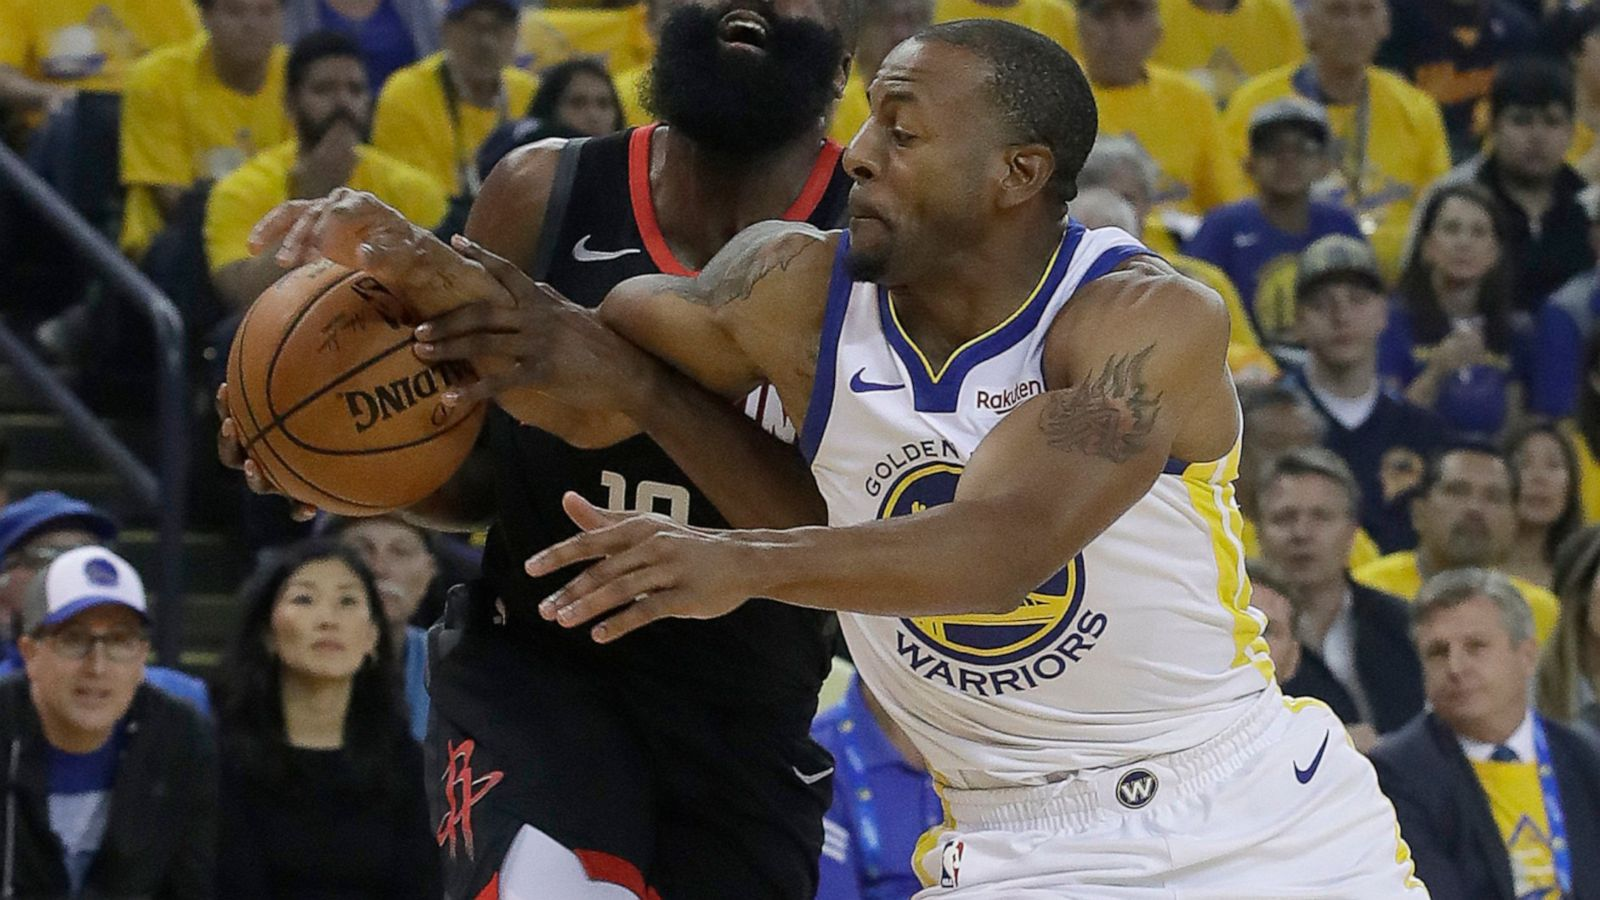 c017163d56e7 Officiating becomes focus of Warriors-Rockets Game 1 - ABC News